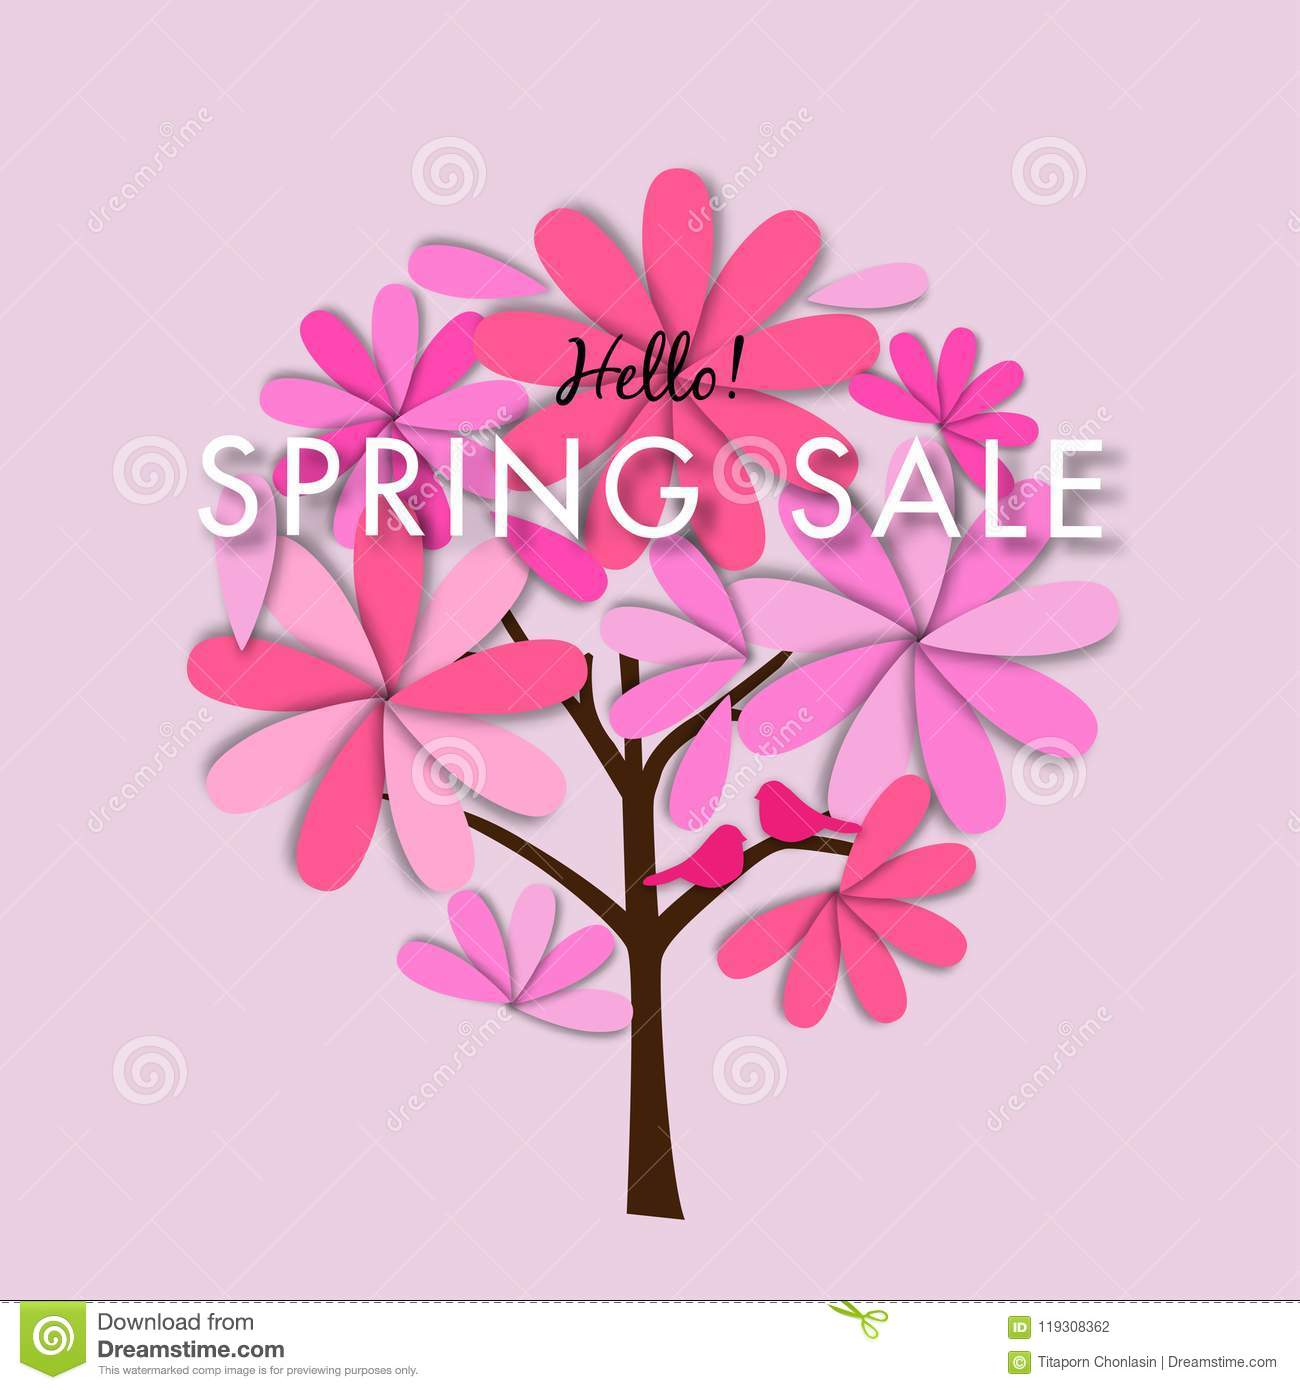 Spring sale background with green leave, vector illustration template